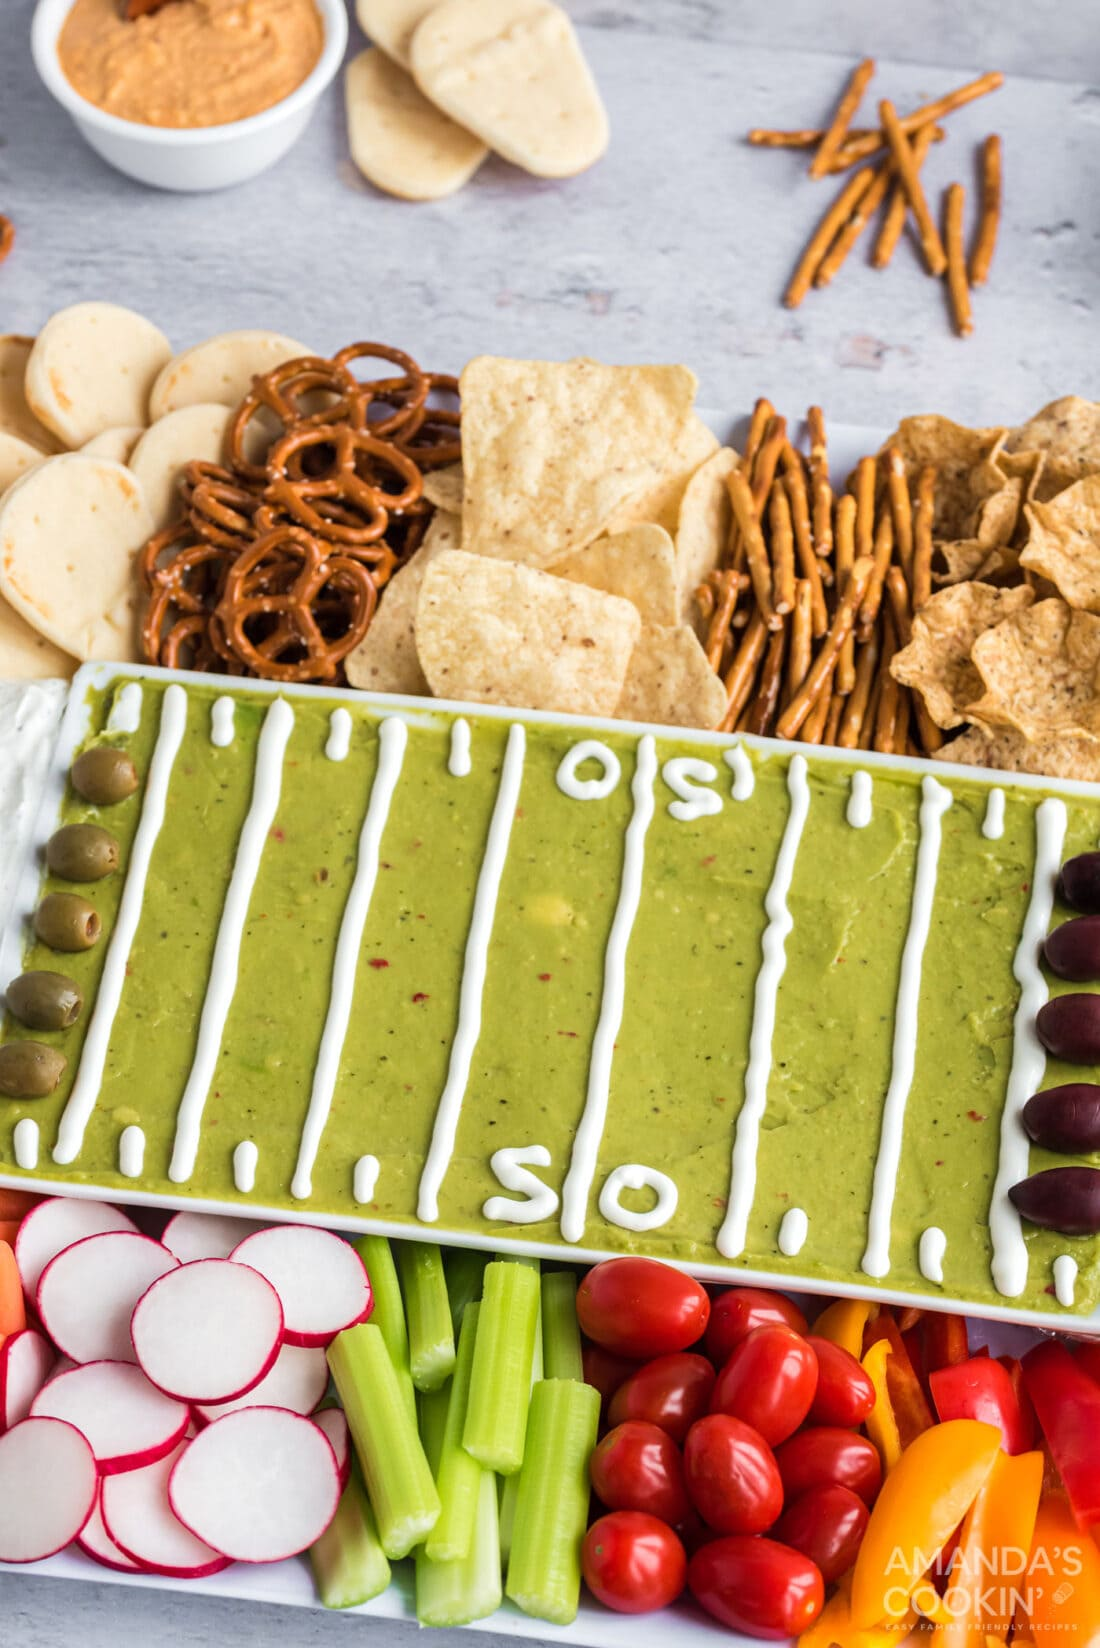 football party tray with guac, veggies, and crackers